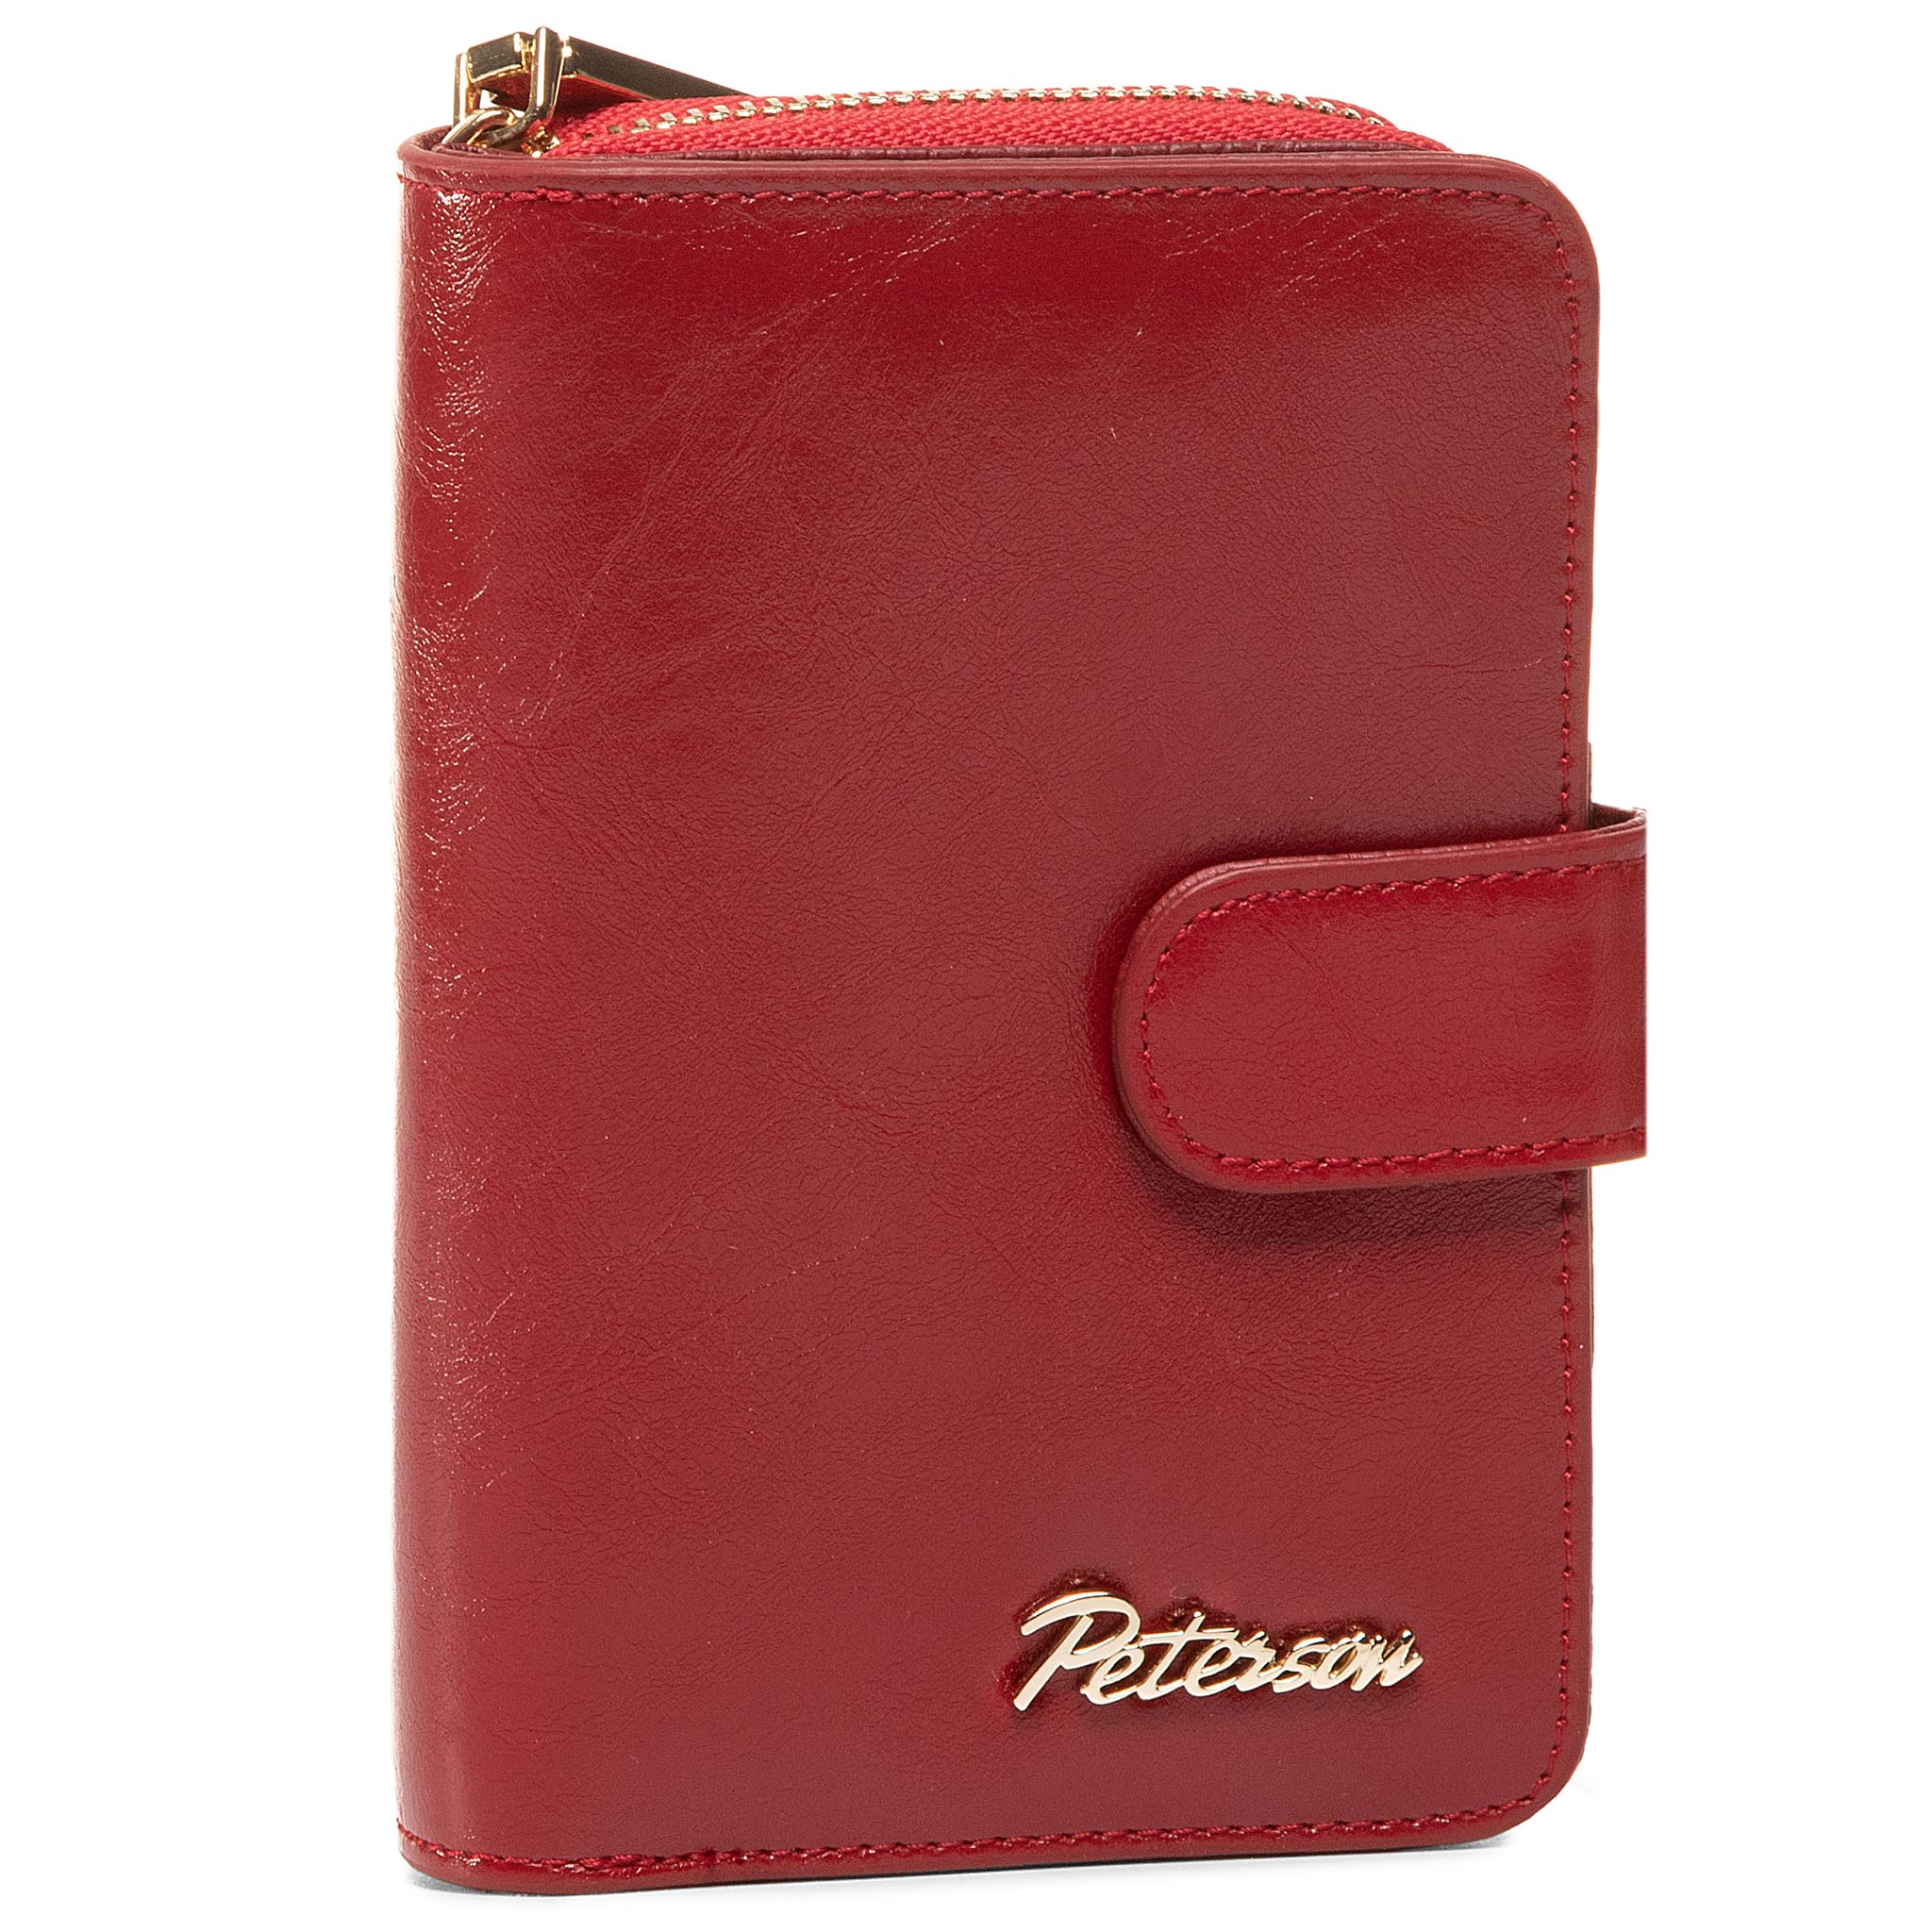 Peterson PL602 Red